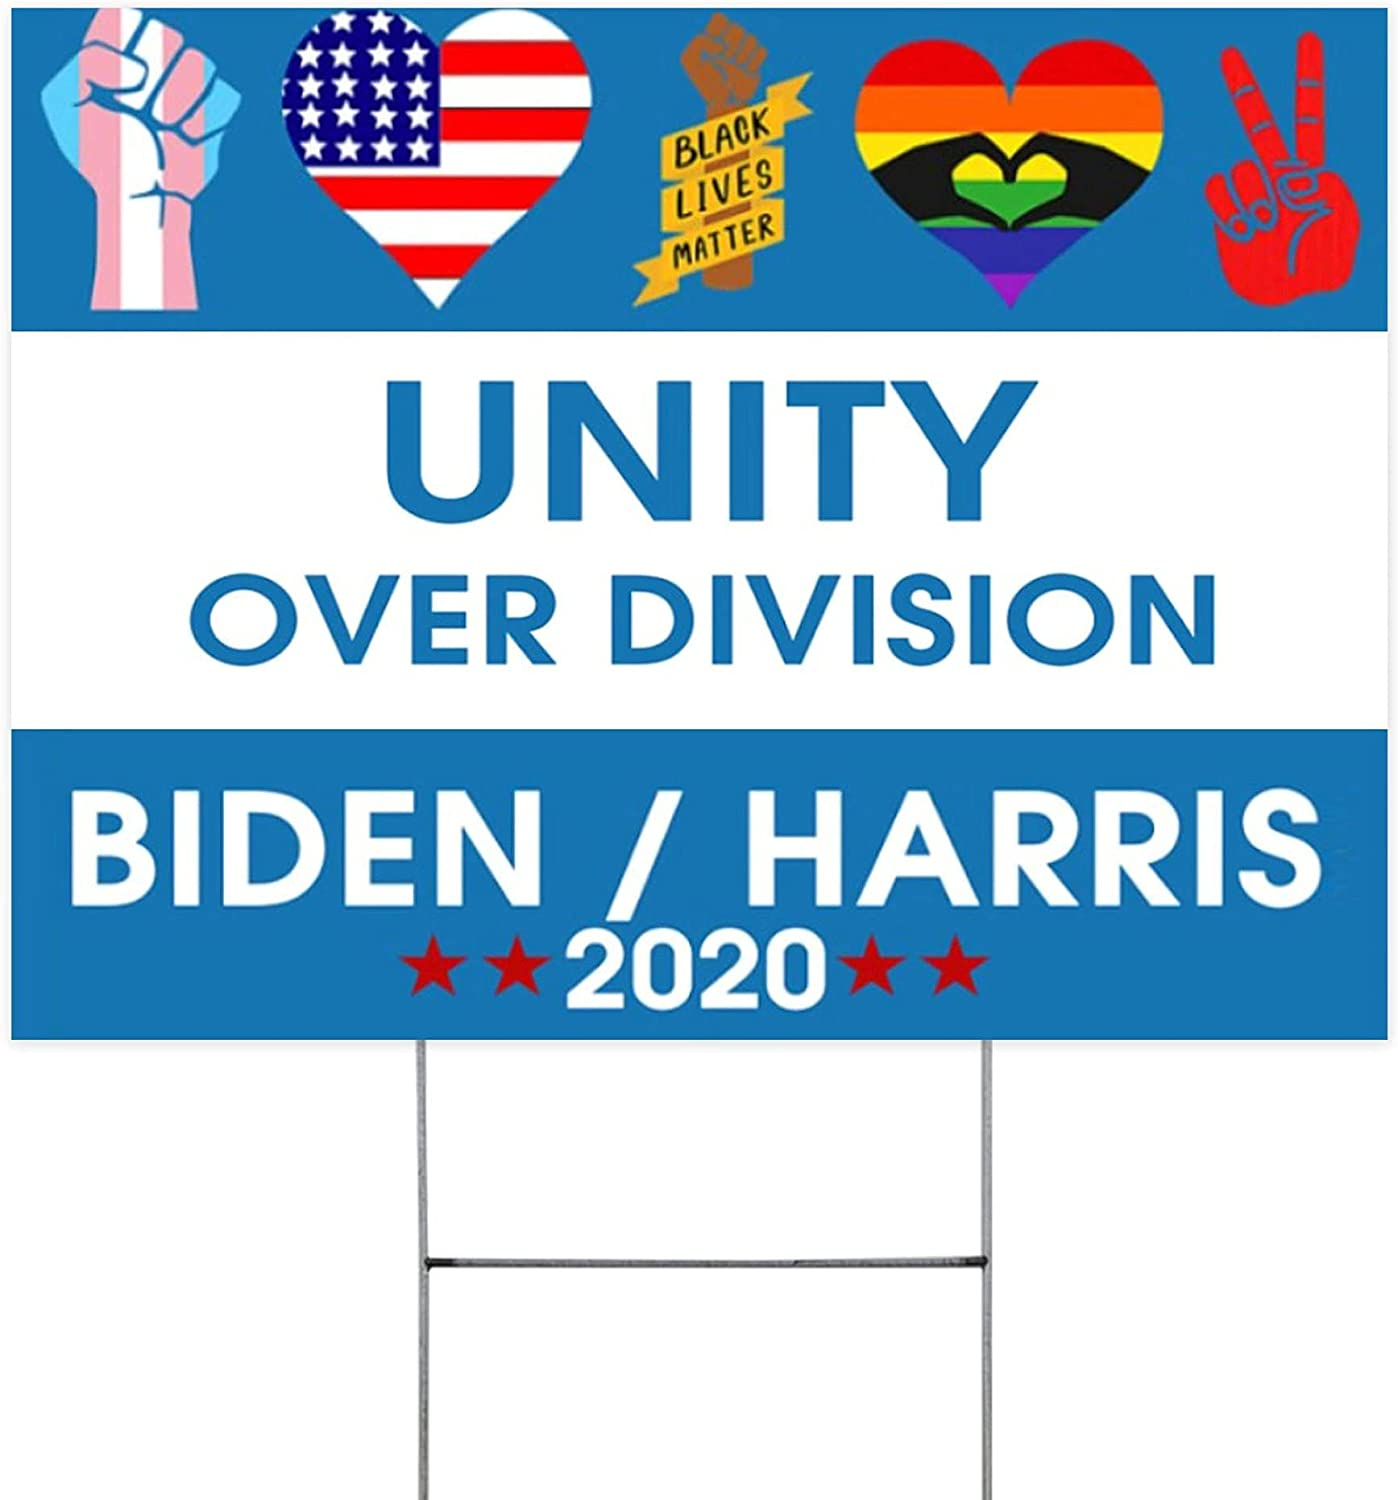 Unity Over Division Yard Lawn Sign Home Decor Printing Clearance SALE Limited time 1 Sided Shipping included 2